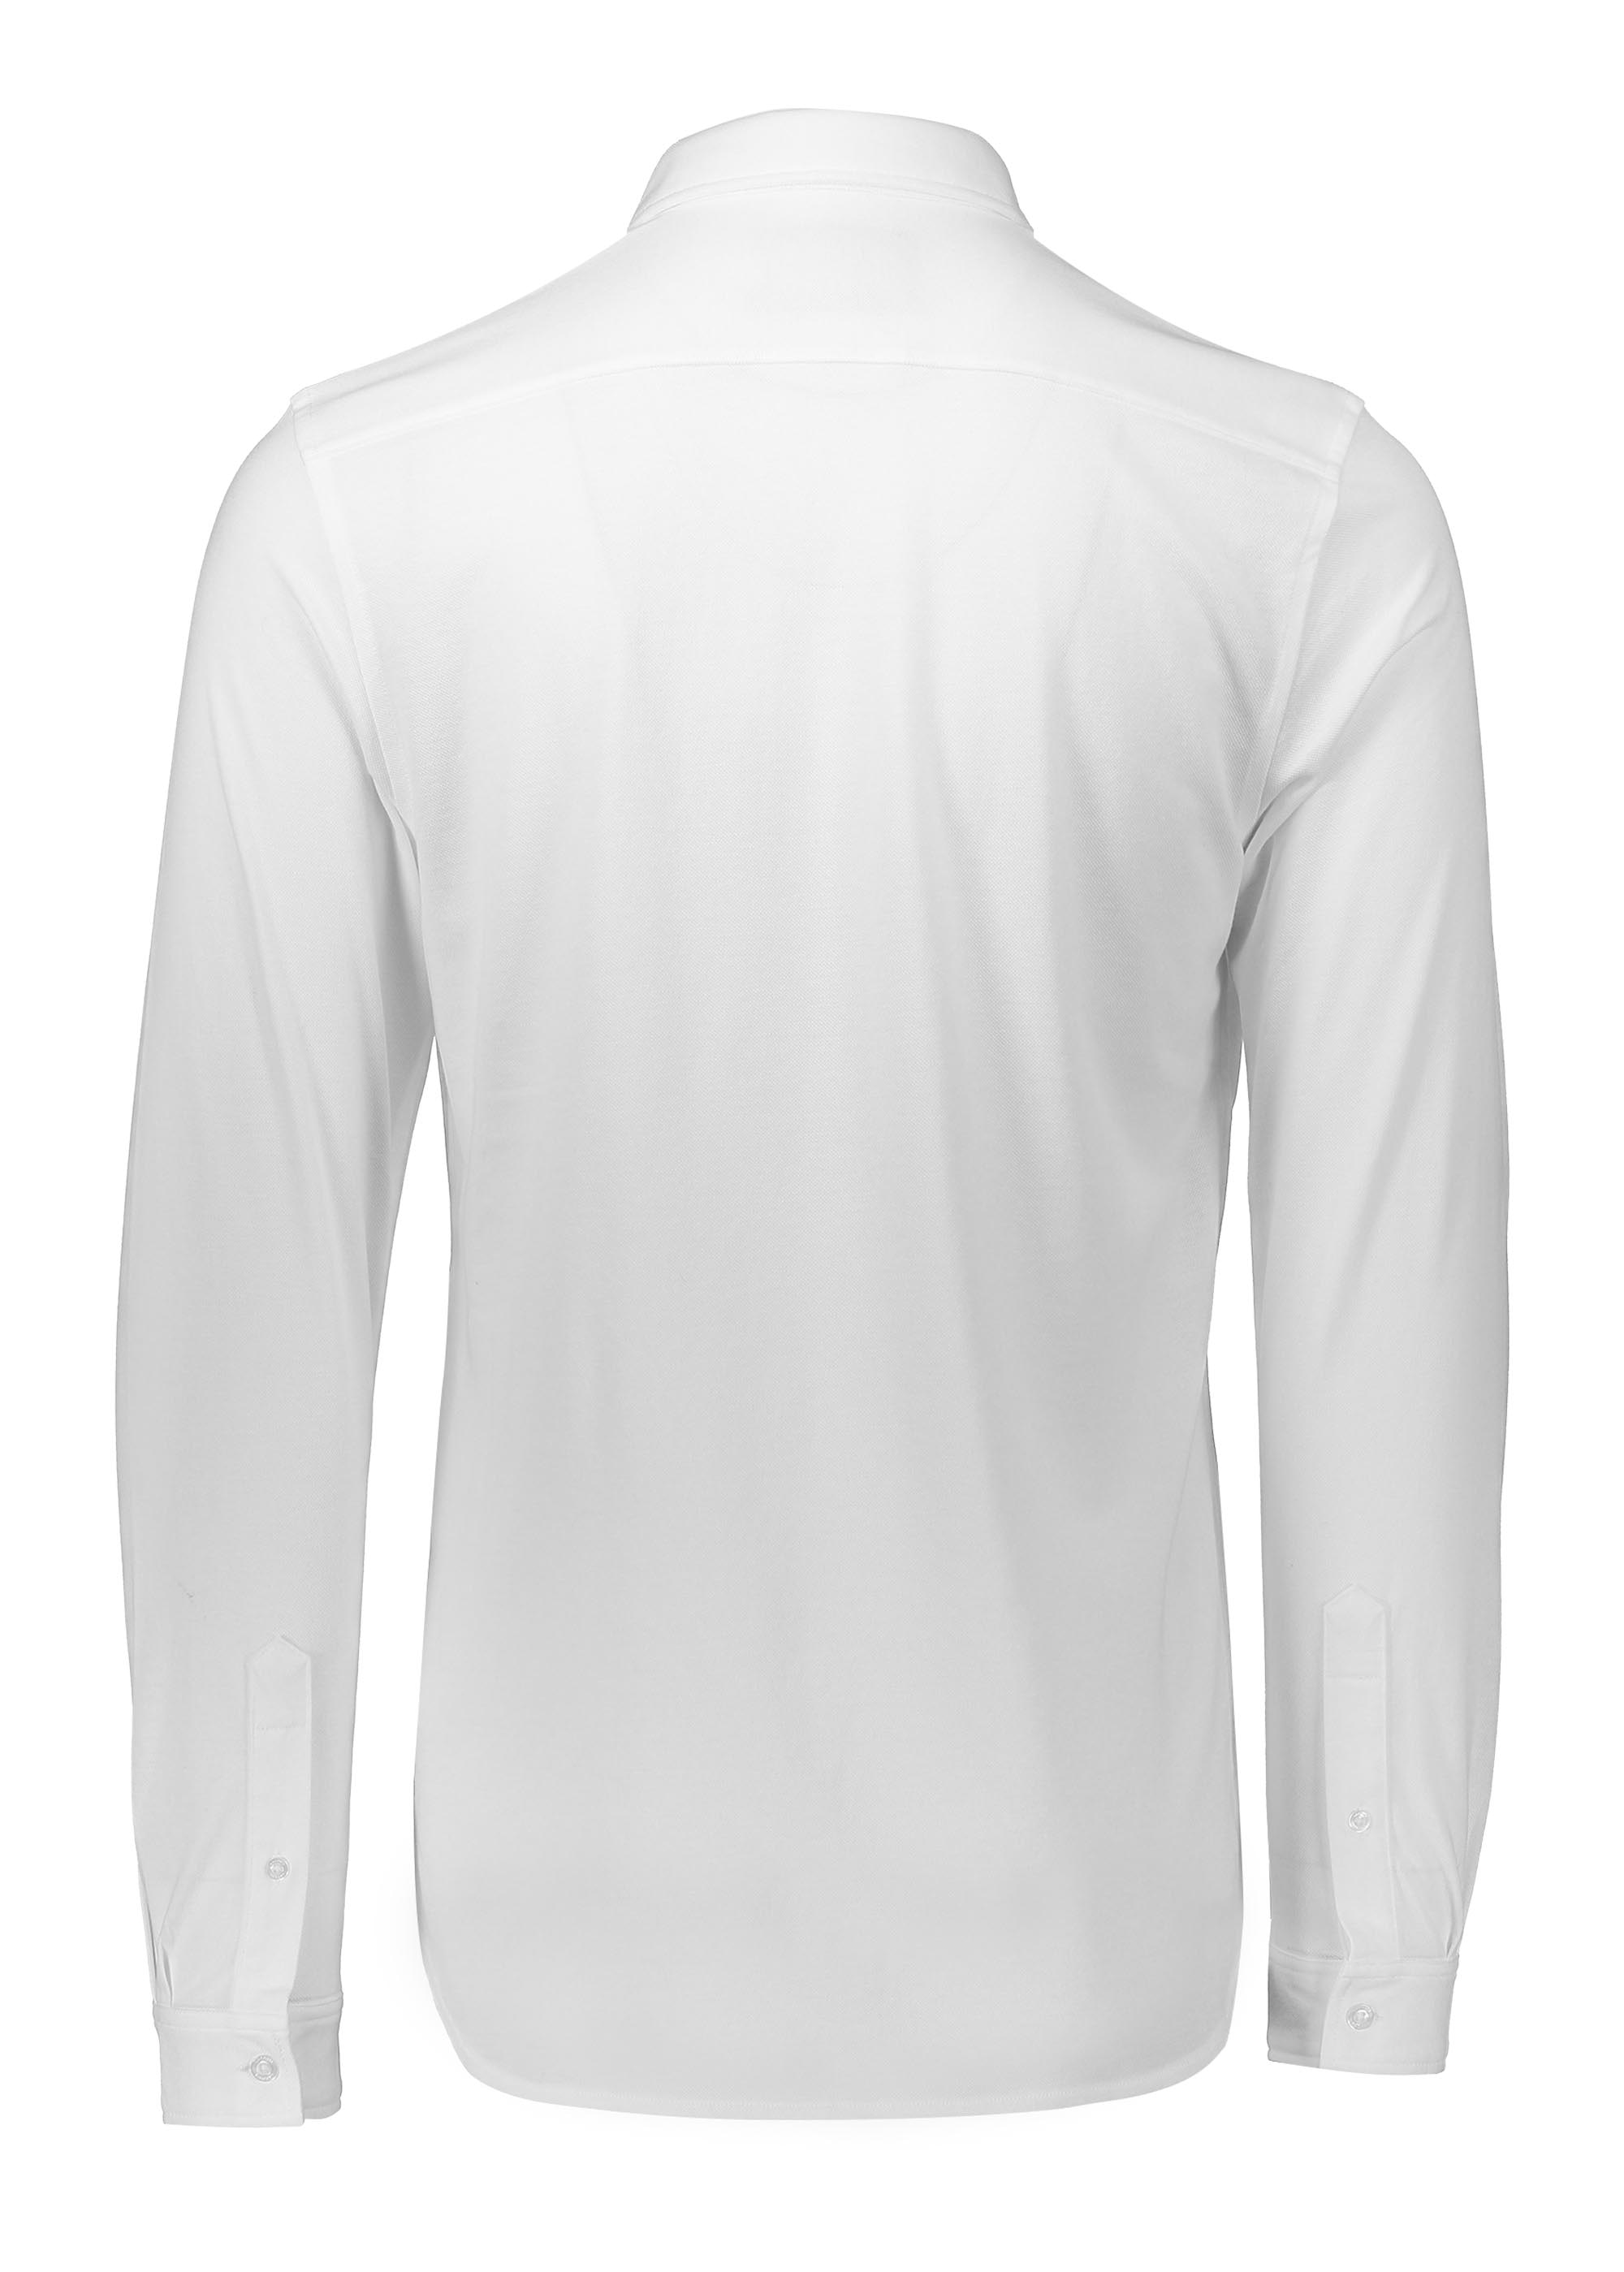 accddd85a0 Lacoste Pocket Shirt - White - Triads Mens from Triads UK